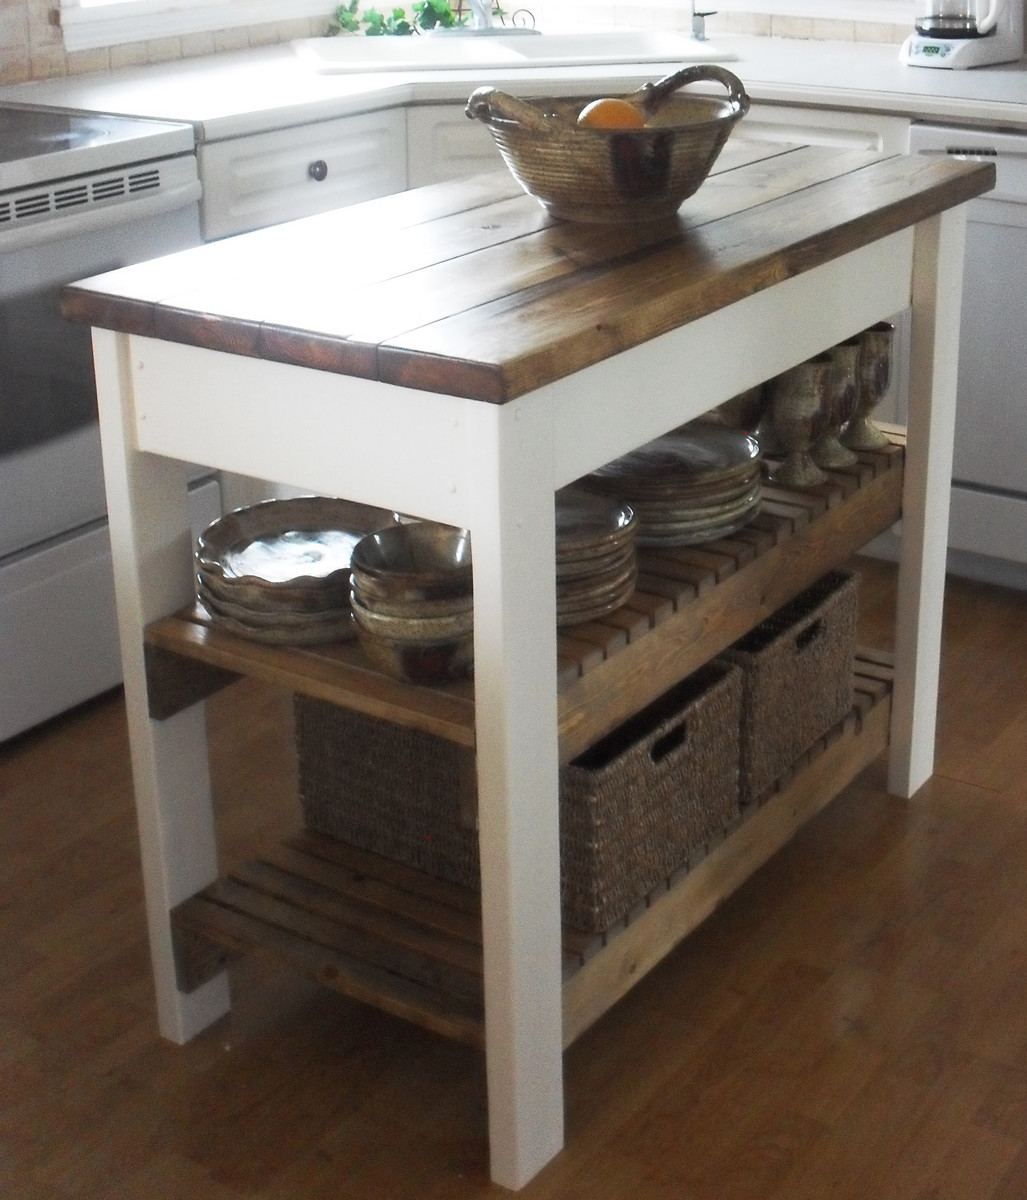 Ana white kitchen island diy projects for Kitchen island designs plans